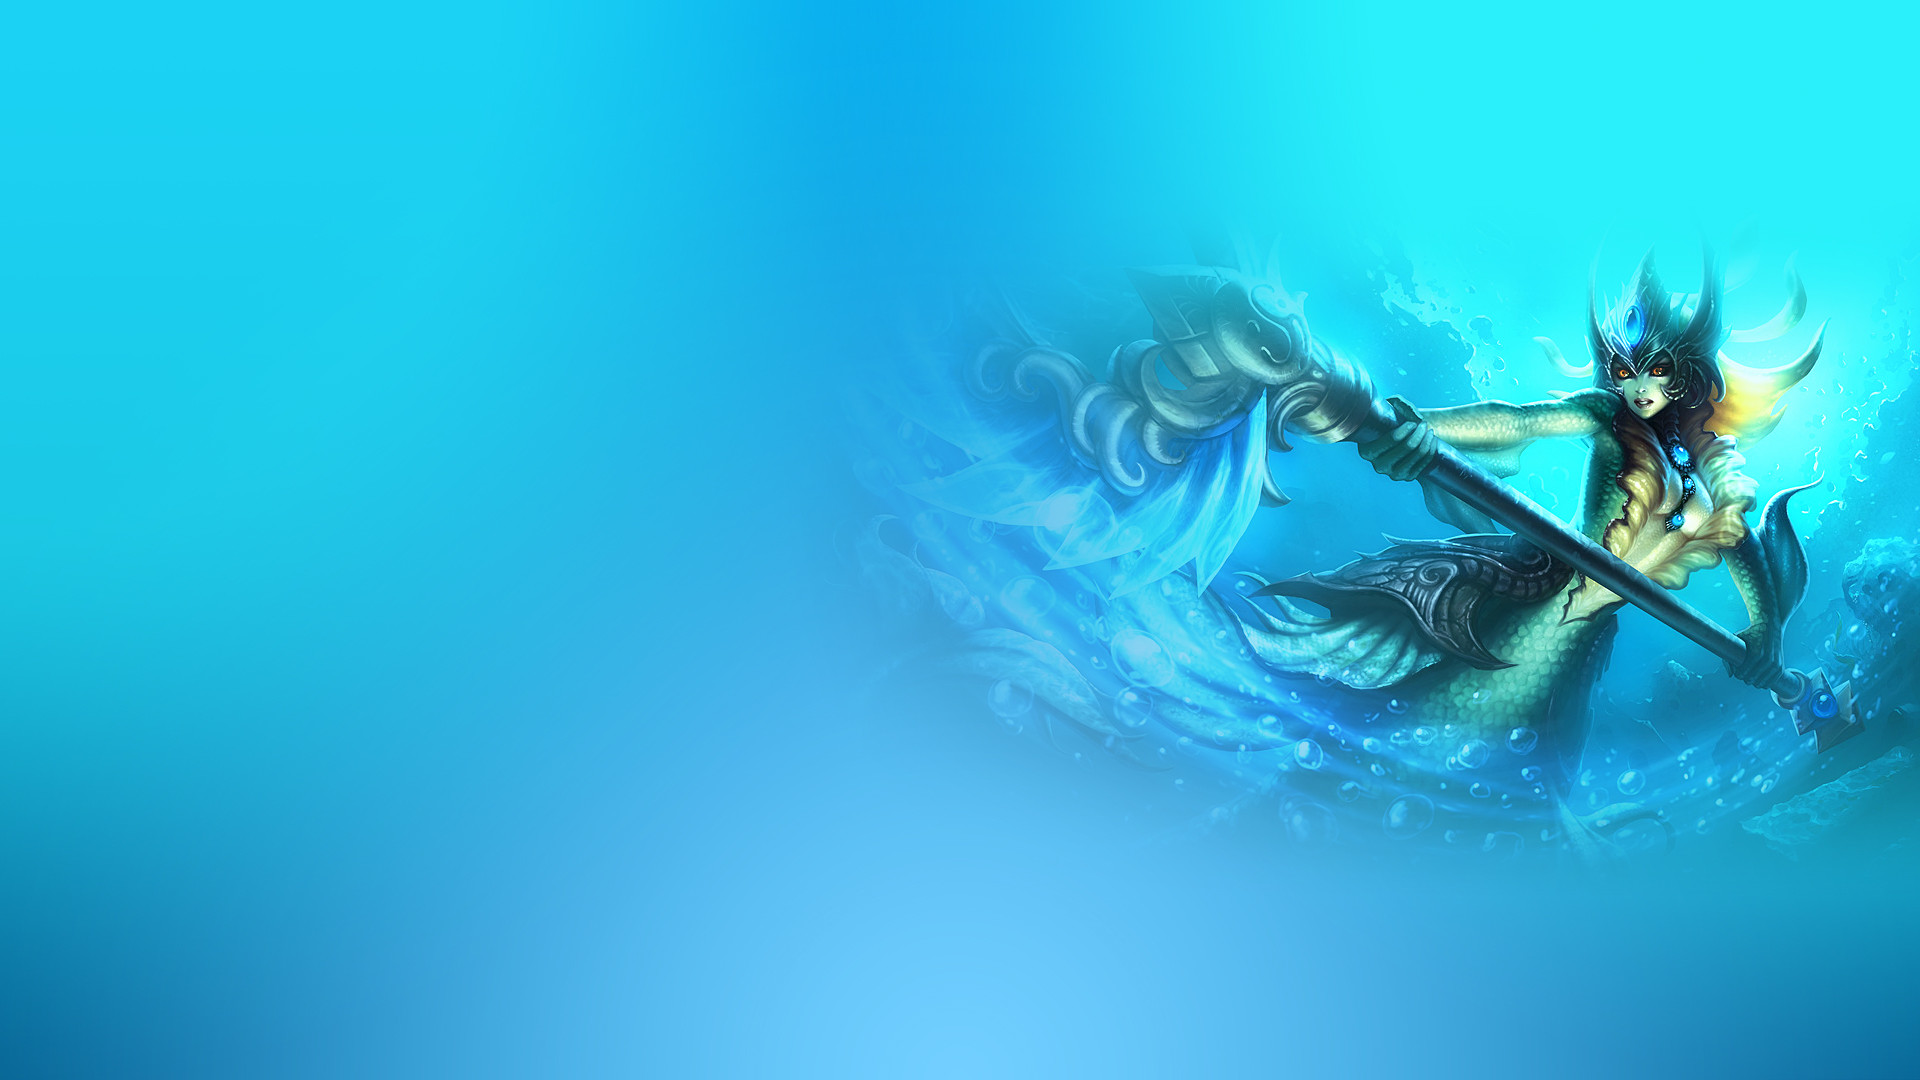 1920x1080 Computerspiele - League Of Legends Nami (League of Legends) Wallpaper